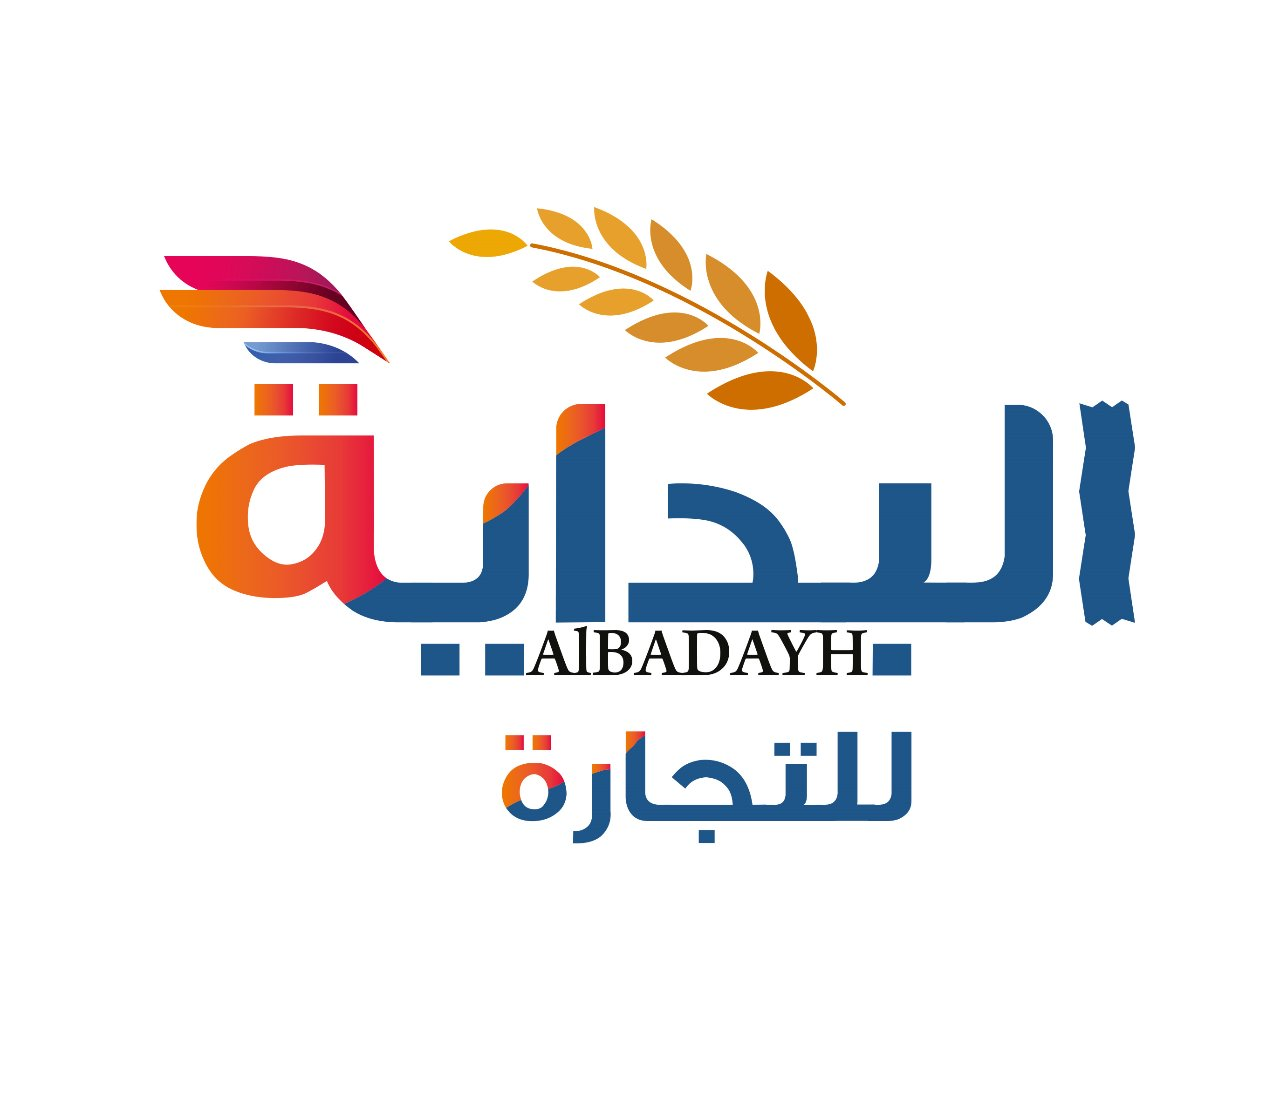 Albadayh Profile Picture